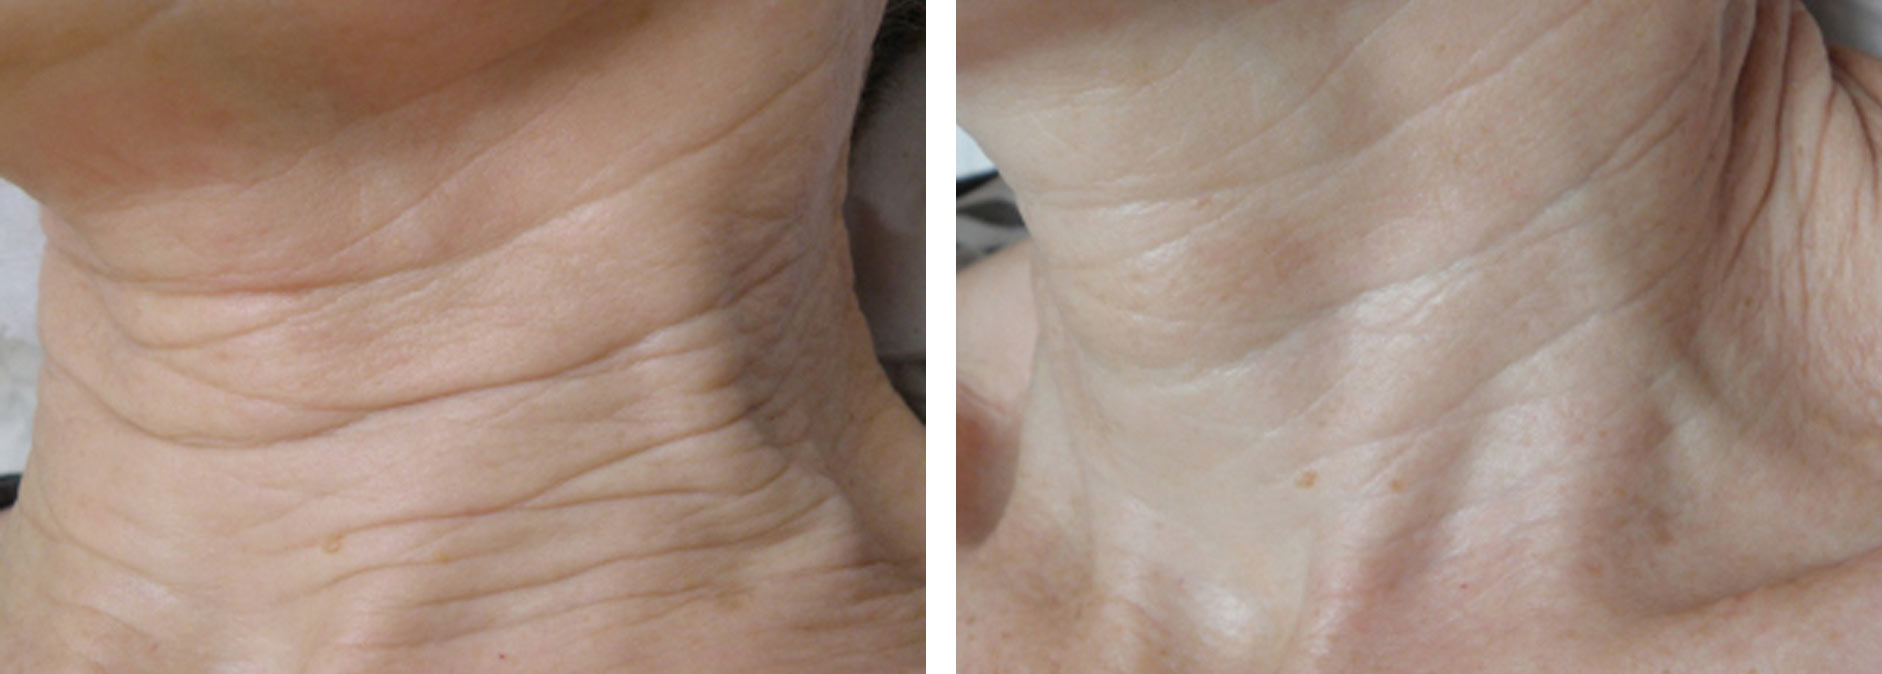 Intensif Microneedling with Radio Frequency Before and After 3